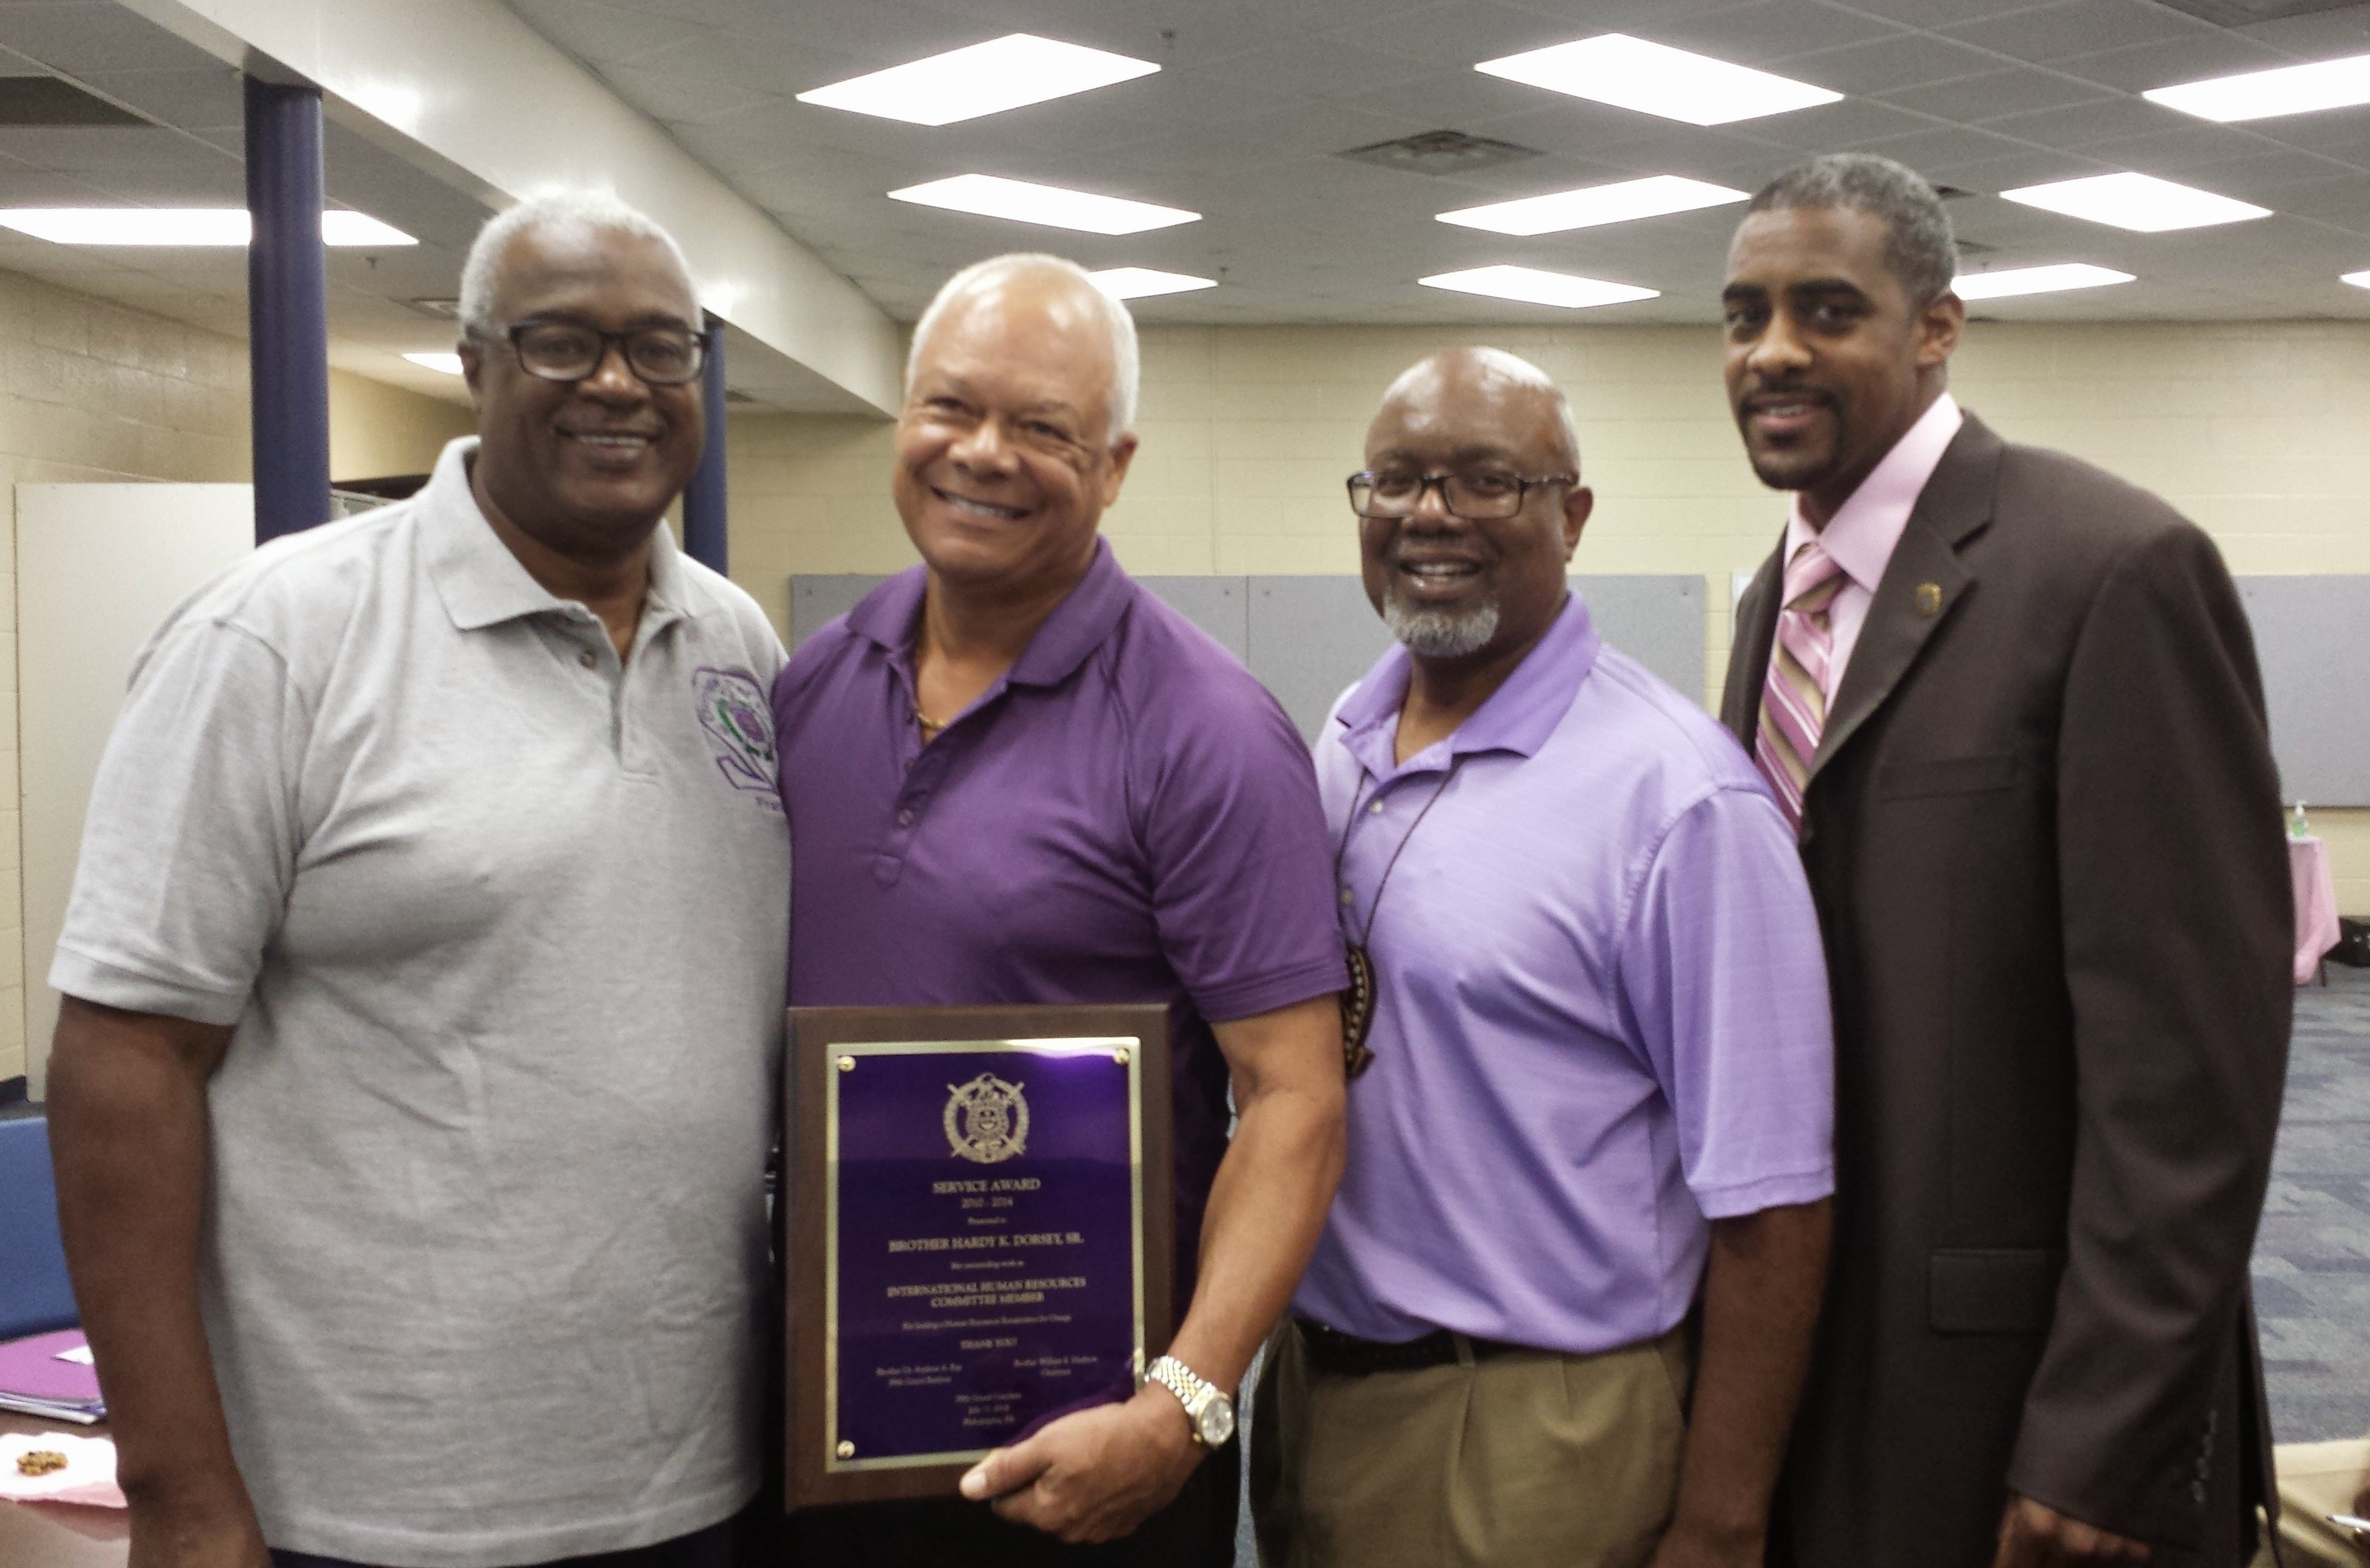 Hardy Dorsey - IHQ Human Resource Service Award